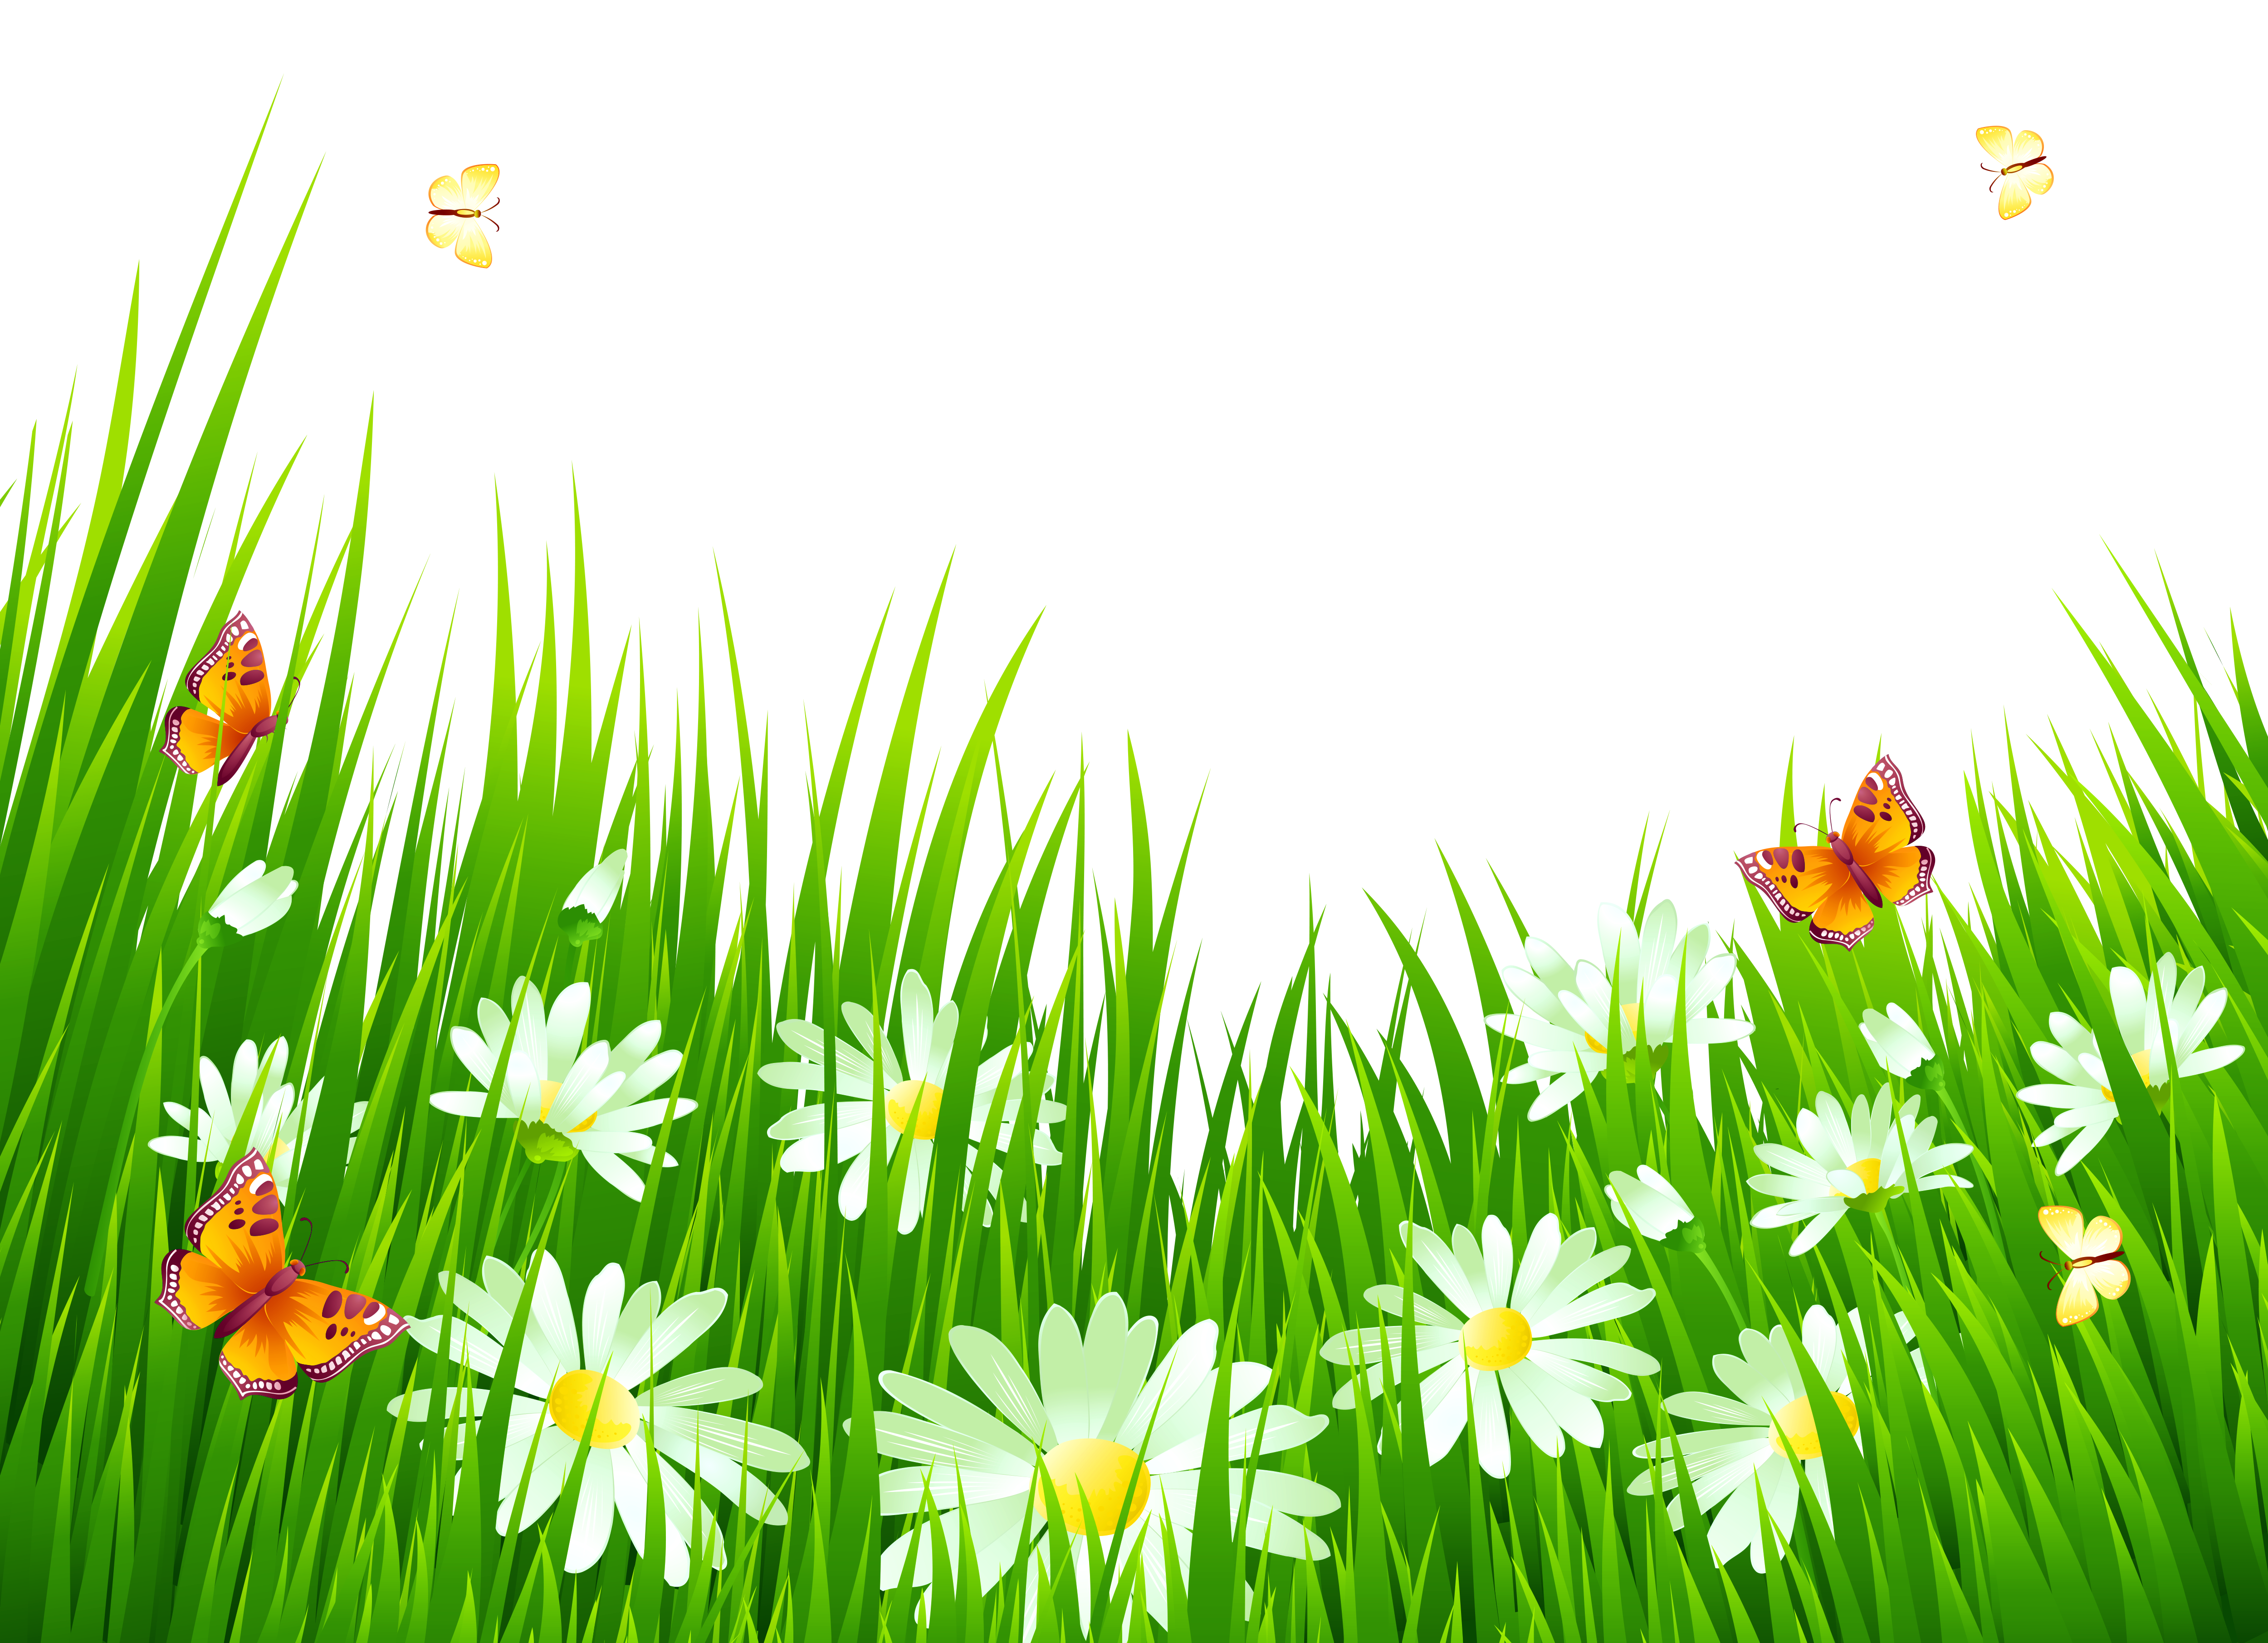 Clipart grass and flowers image free stock Grass and Flowers Clip Art – Clipart Free Download image free stock